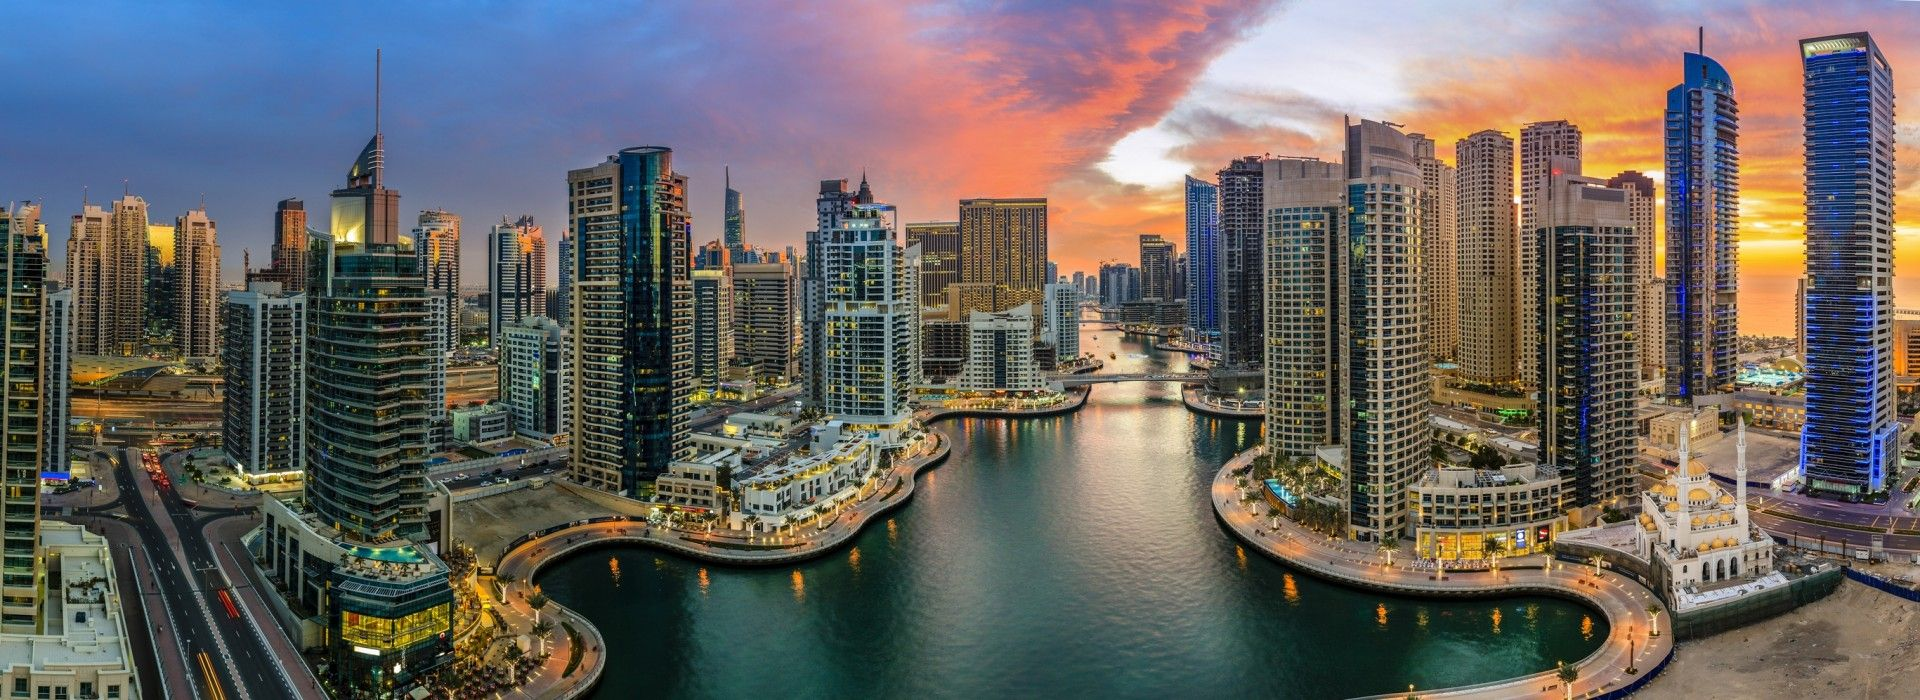 Dubai Marina, one of the world's largest and most luxurious waterfront communities